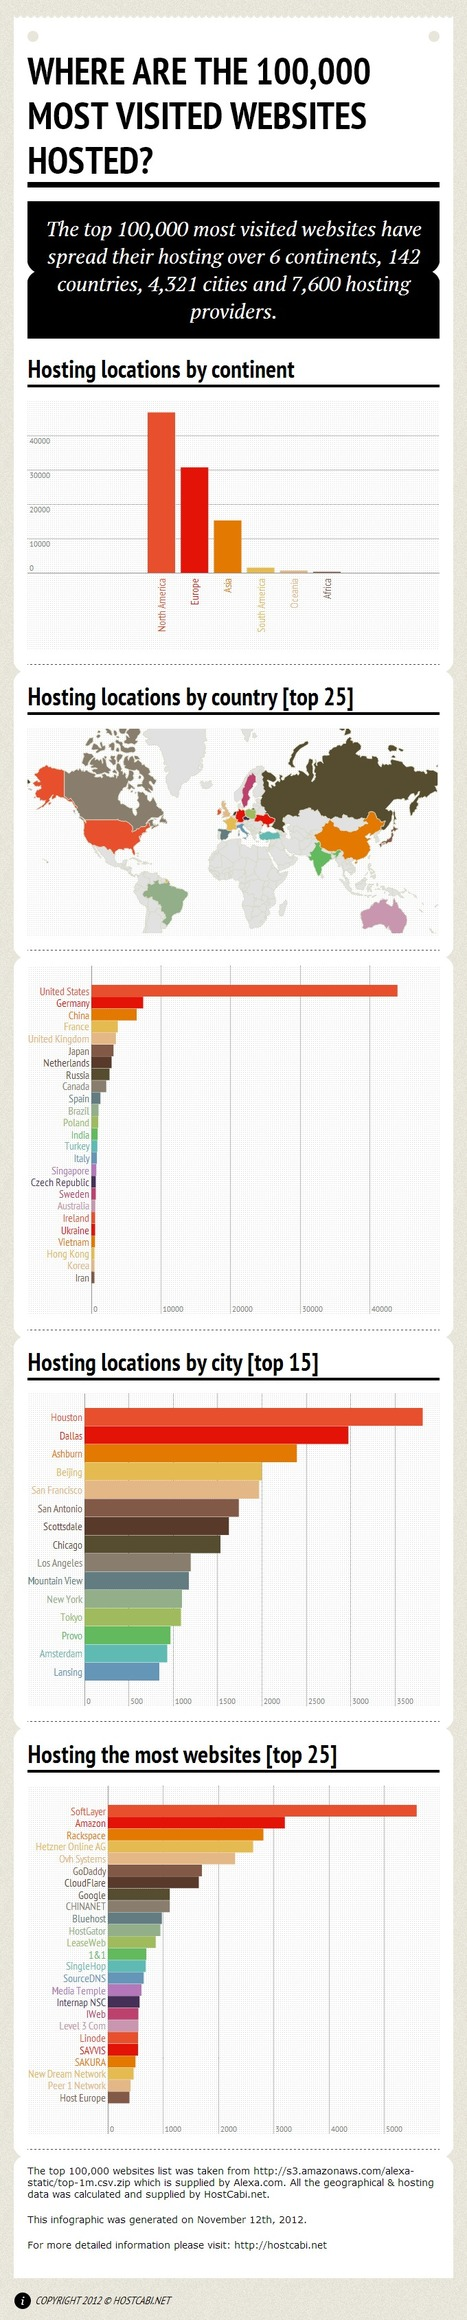 Amsterdam the best 'hostingcity' of Europe – infographic /@BerriePelser | Social Media (network, technology, blog, community, virtual reality, etc...) | Scoop.it